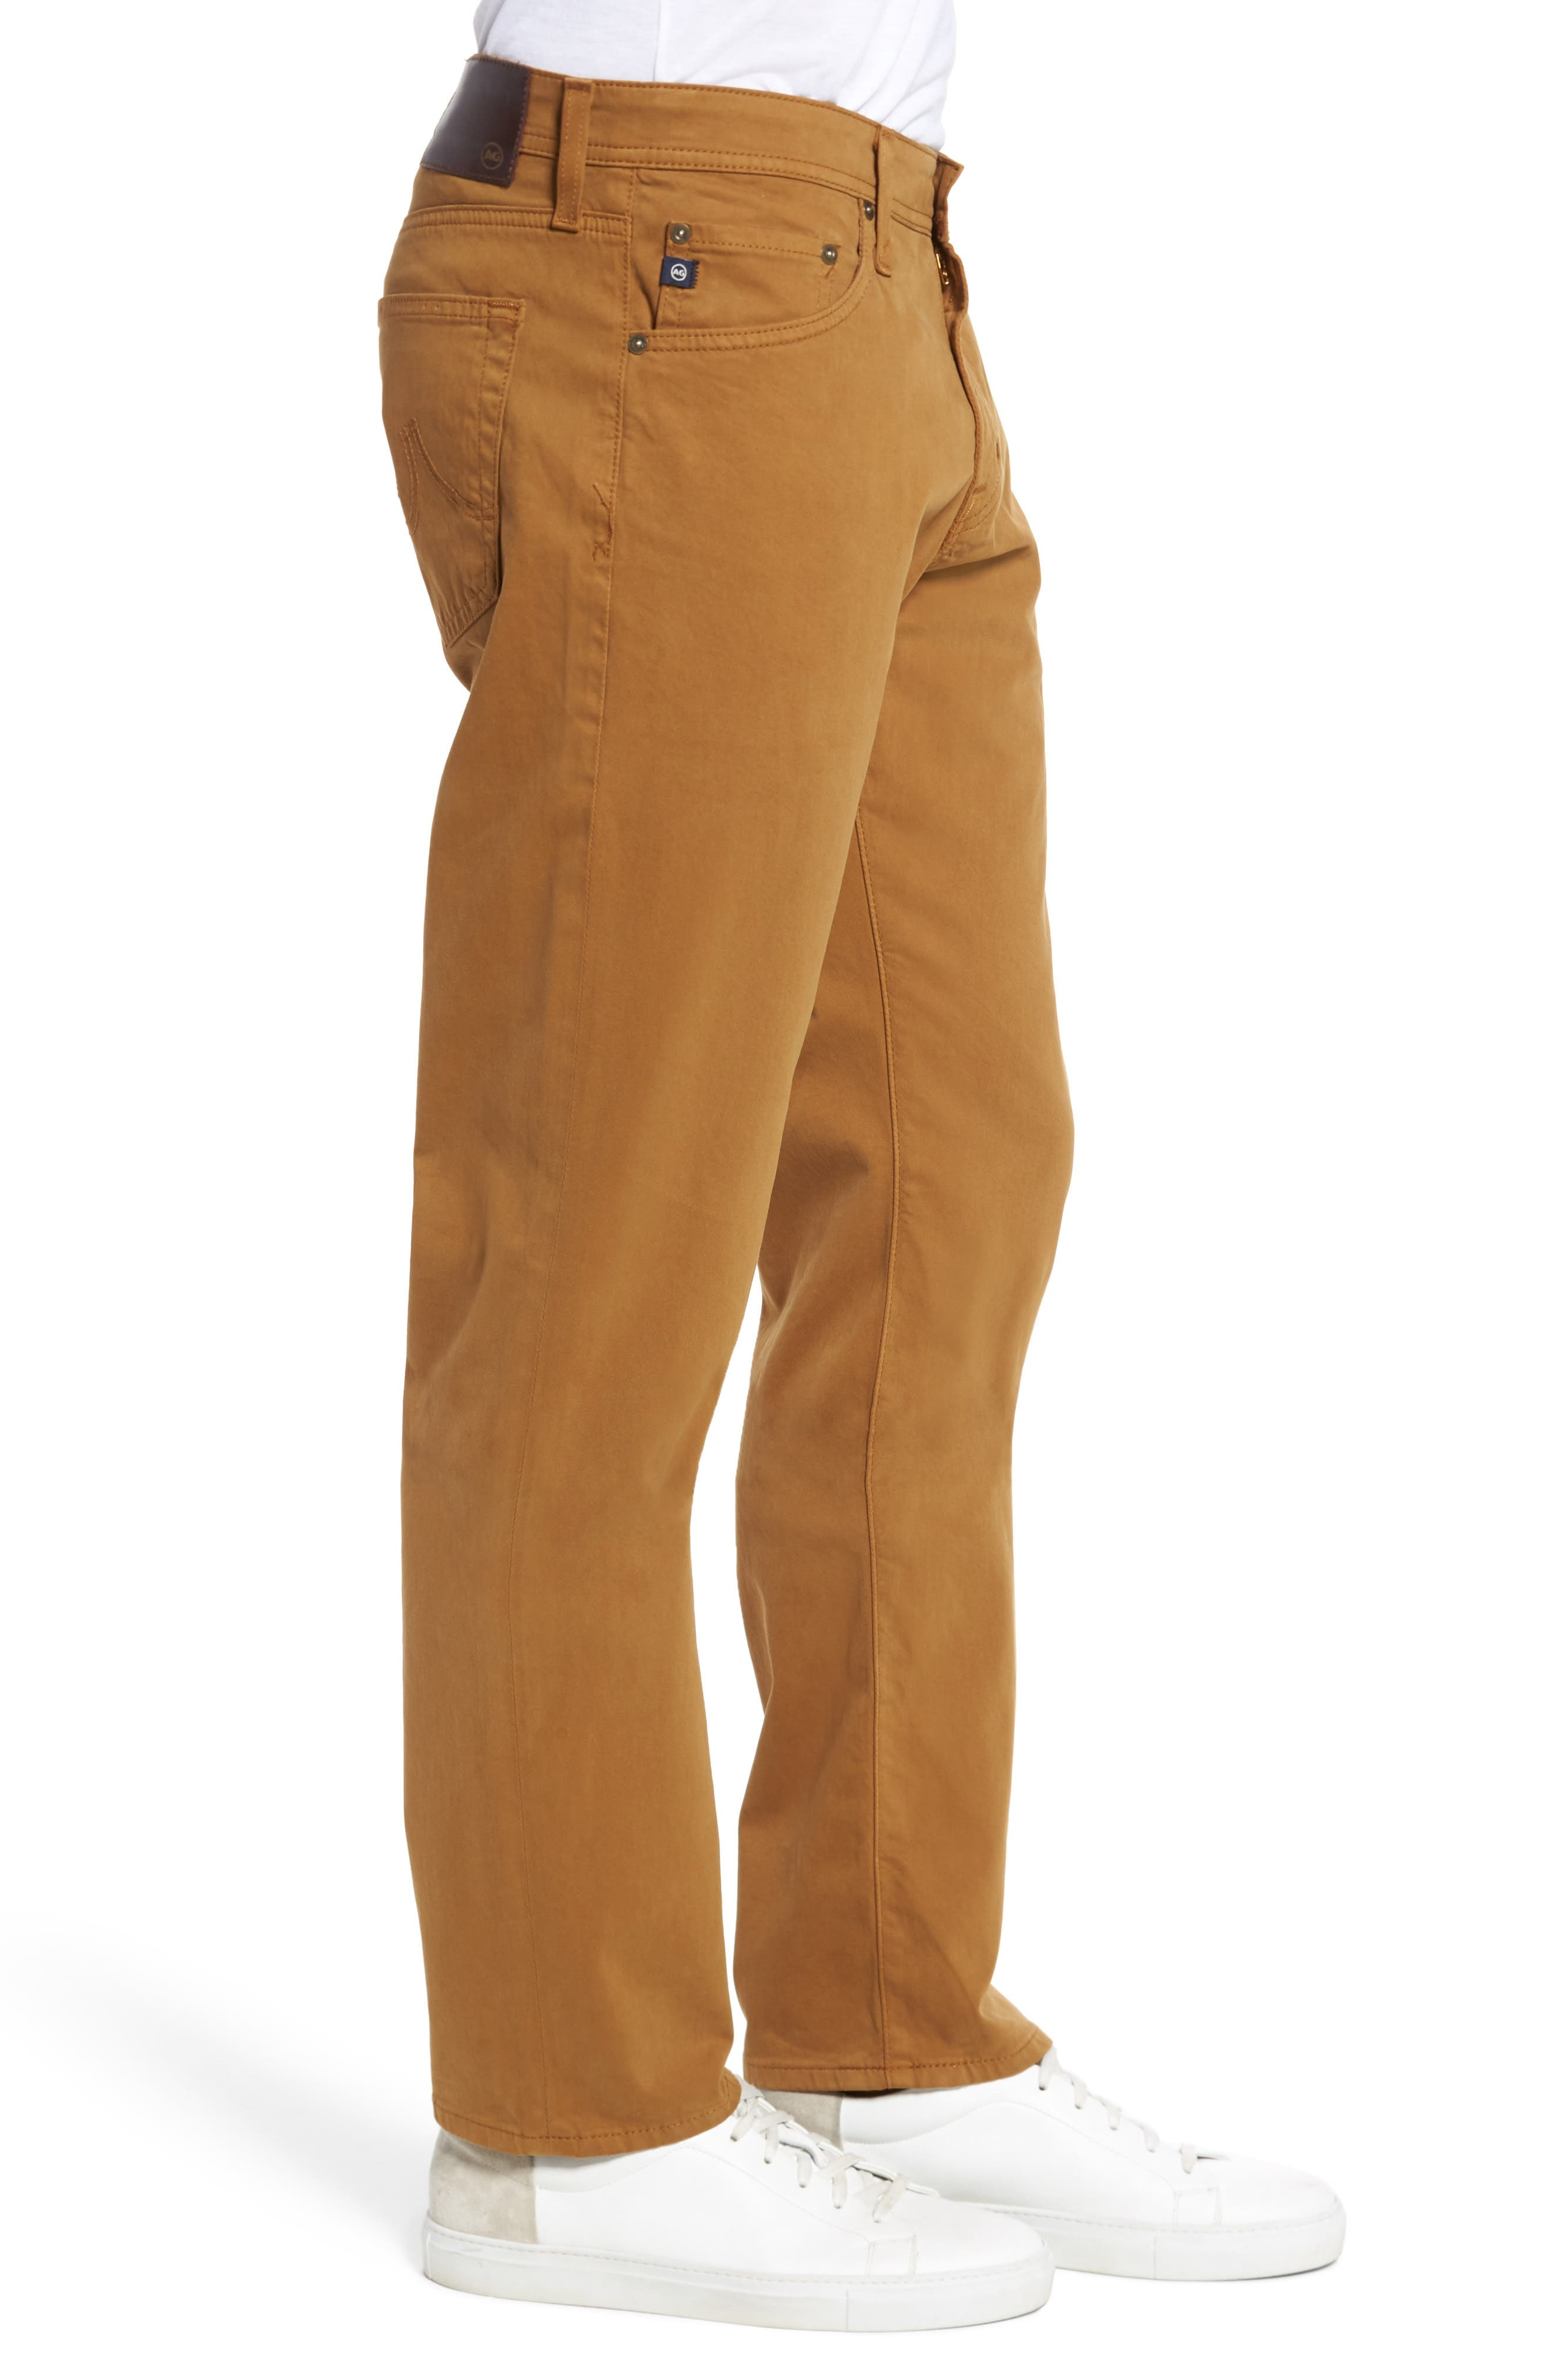 Graduate SUD Slim Straight Leg Pants,                             Alternate thumbnail 3, color,                             Burnt Saffron (Bfn)